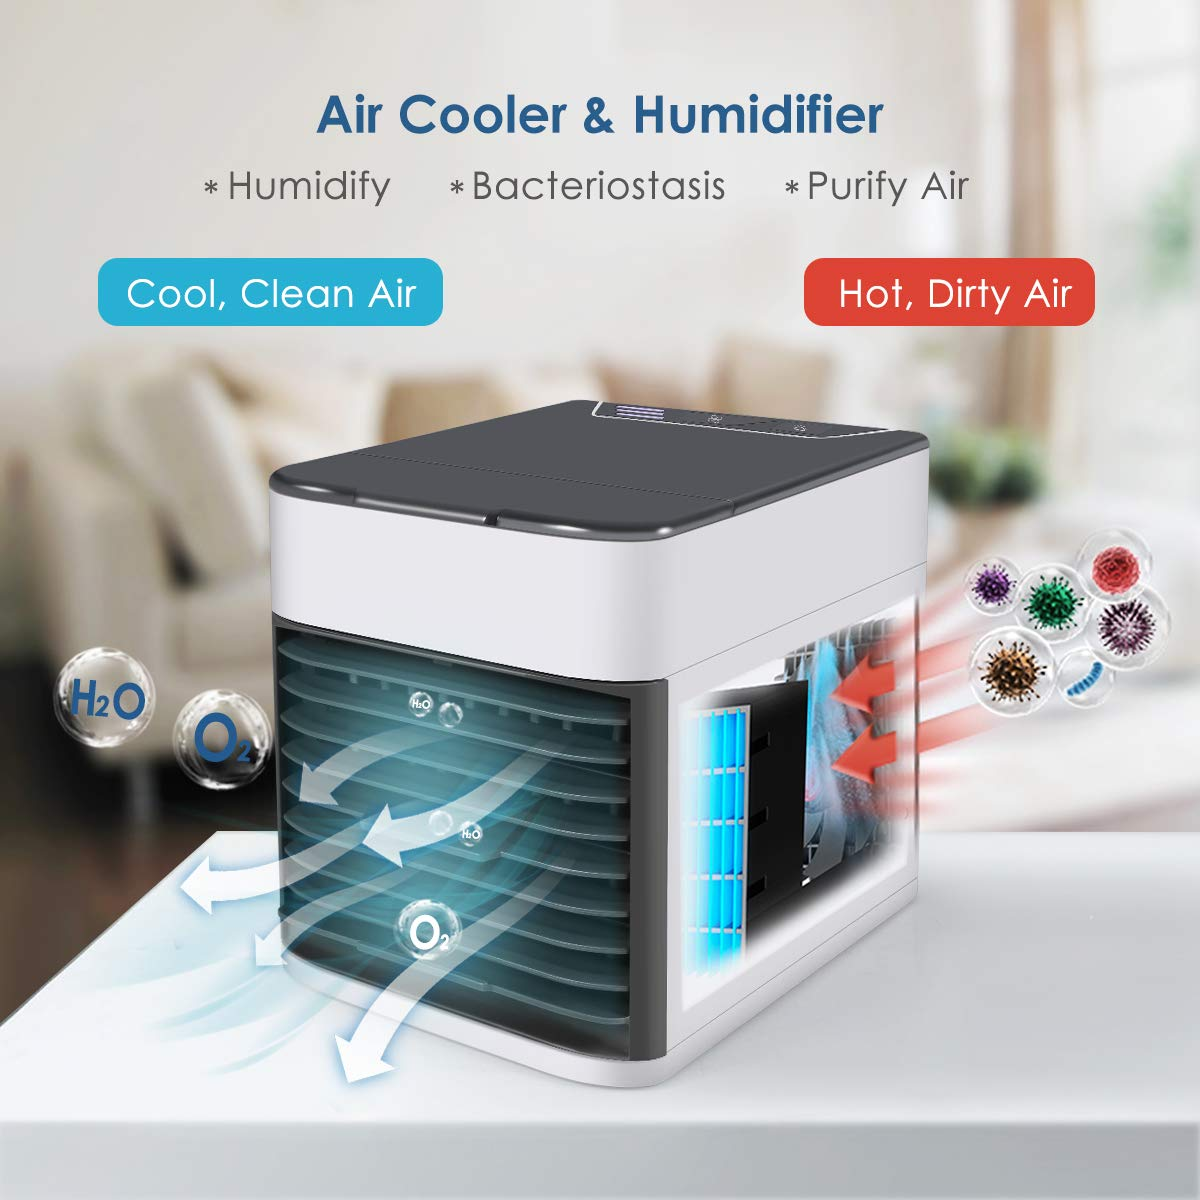 Dorm Efast Air Conditioner Fan Air Personal Space Cooler Small Desktop Fan Quiet Personal Table Fan Mini Evaporative Air Circulator Cooler Humidifier Bladeless Quiet for Office